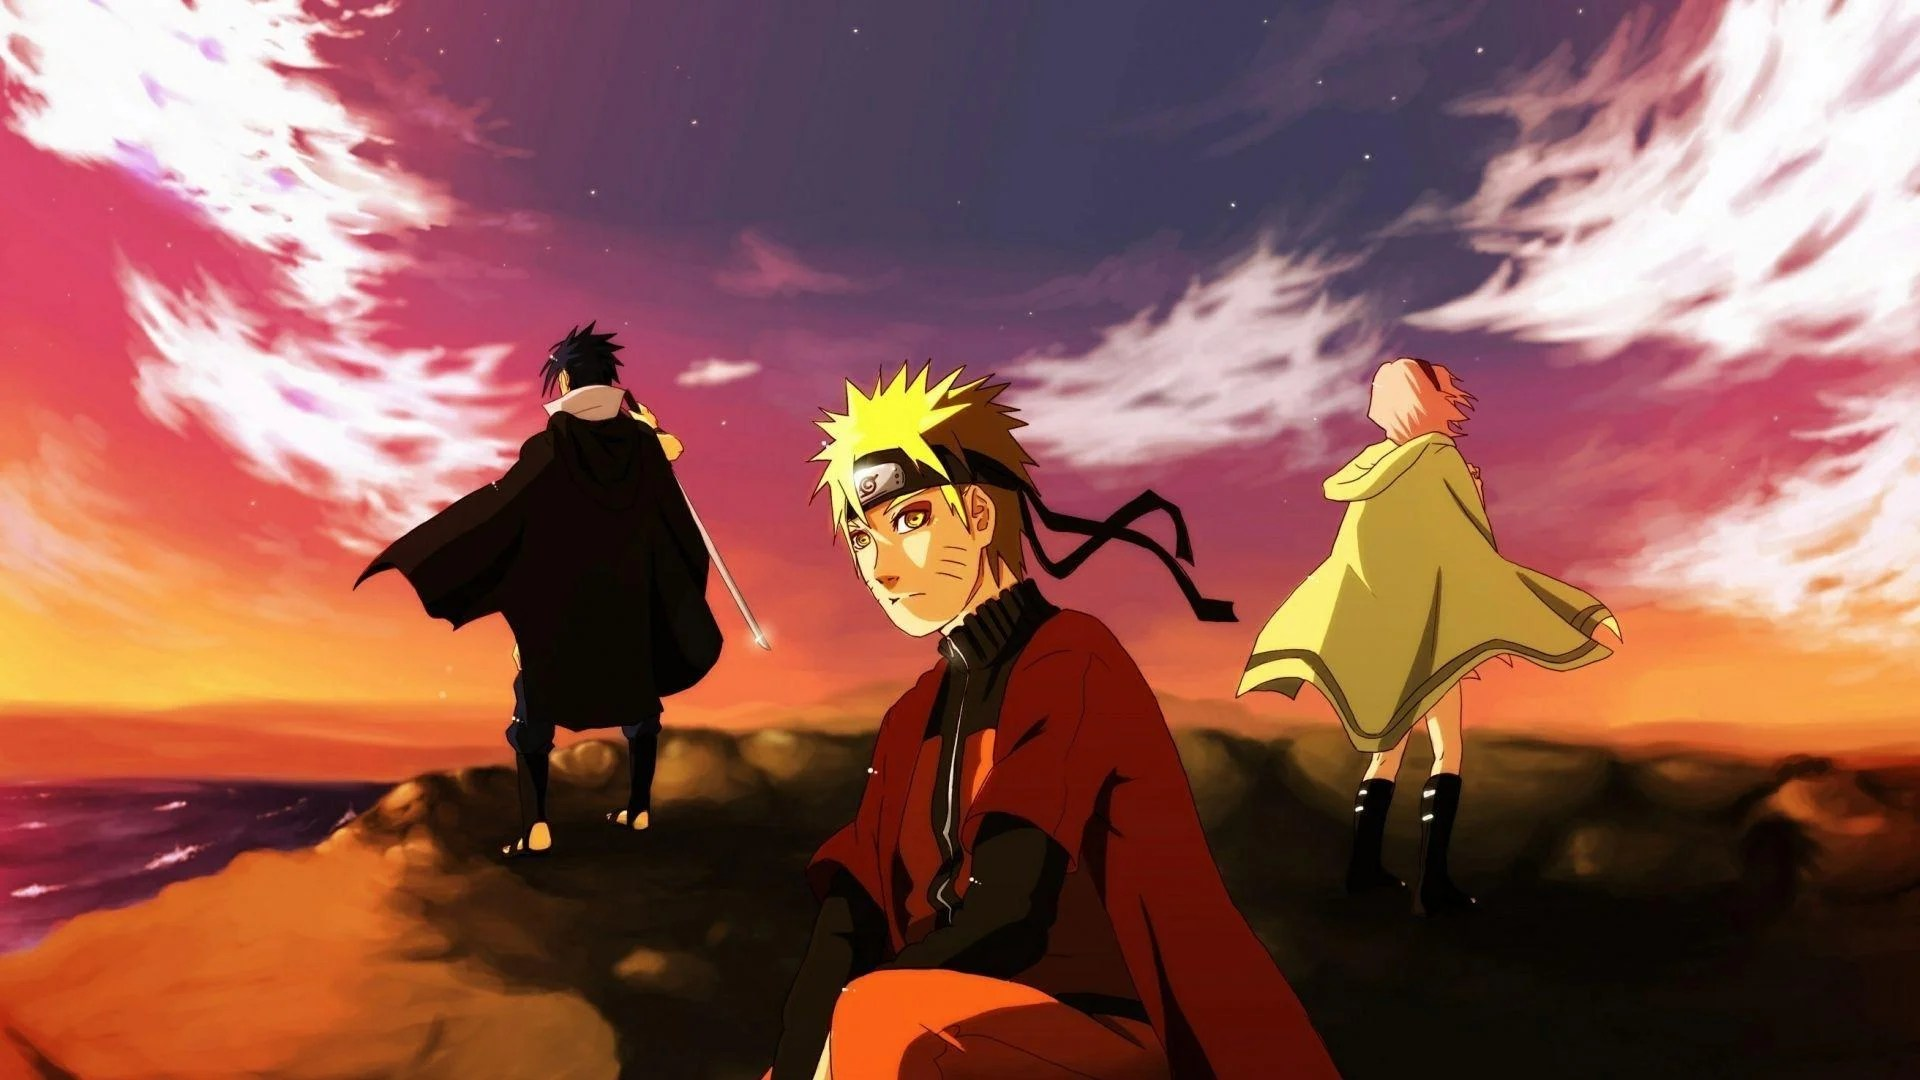 You can also upload and share your favorite anime aesthetic wallpapers. Naruto Aesthetic Desktop Wallpapers - Wallpaper Cave